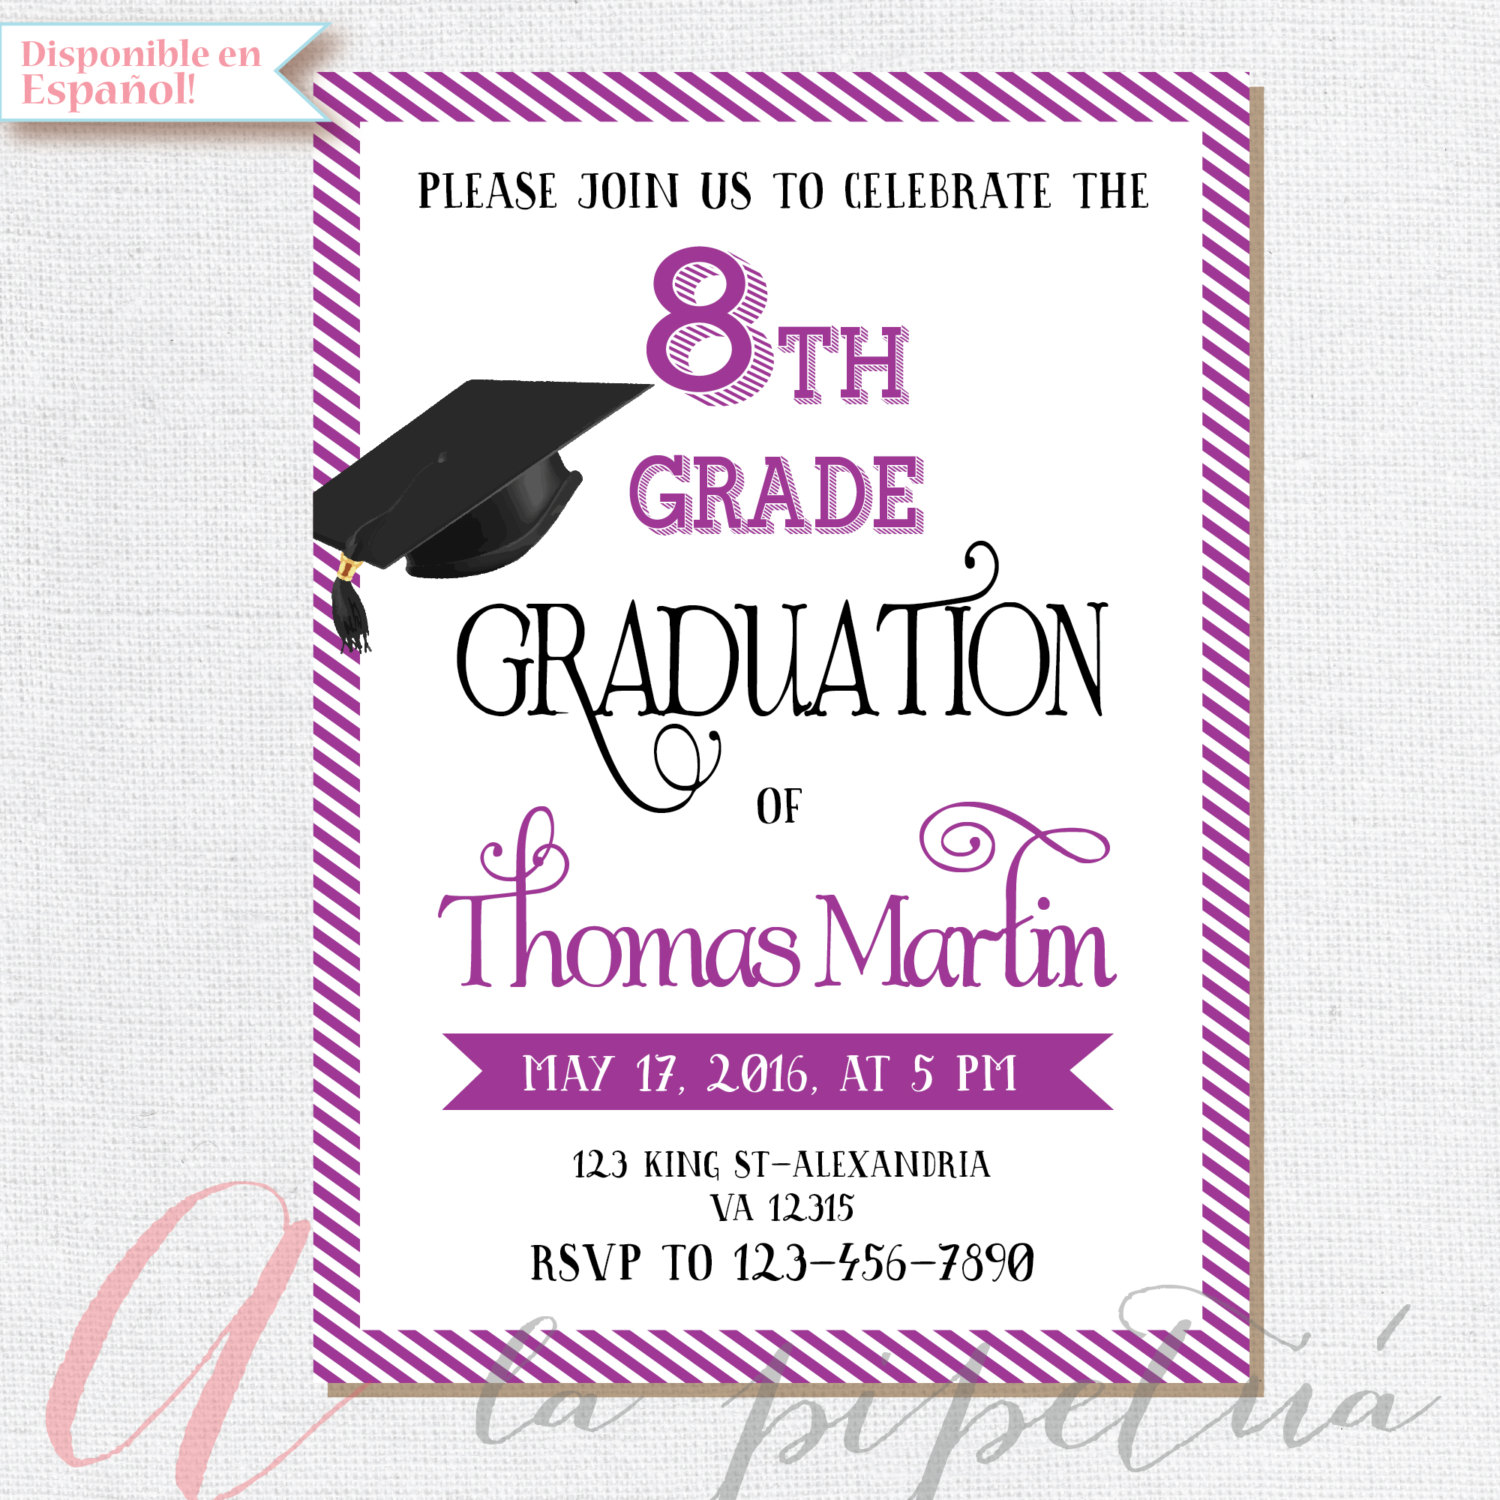 Graduation clipart sad 8th 8th 8th grade invitation